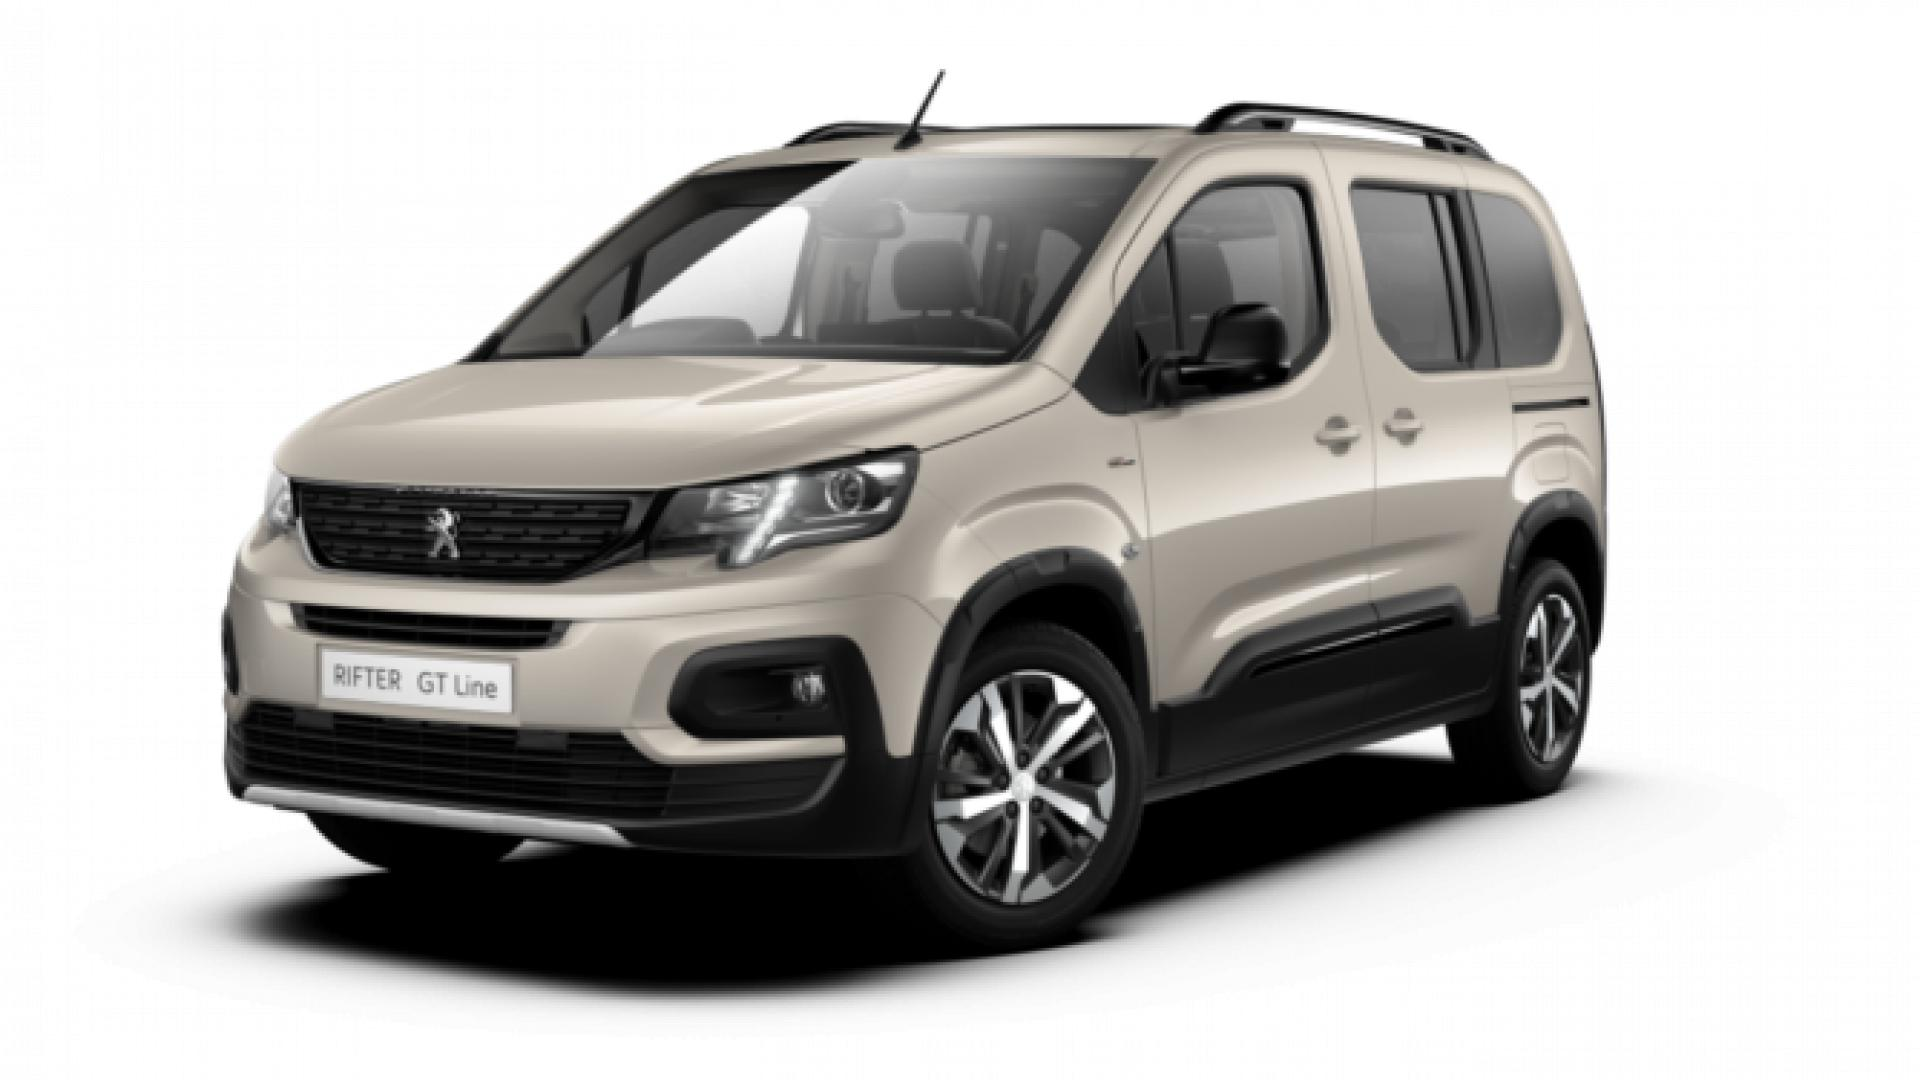 new peugeot rifter sw 1 5 bluehdi 130 gt line 7 seats 5dr eat8 robins and day. Black Bedroom Furniture Sets. Home Design Ideas